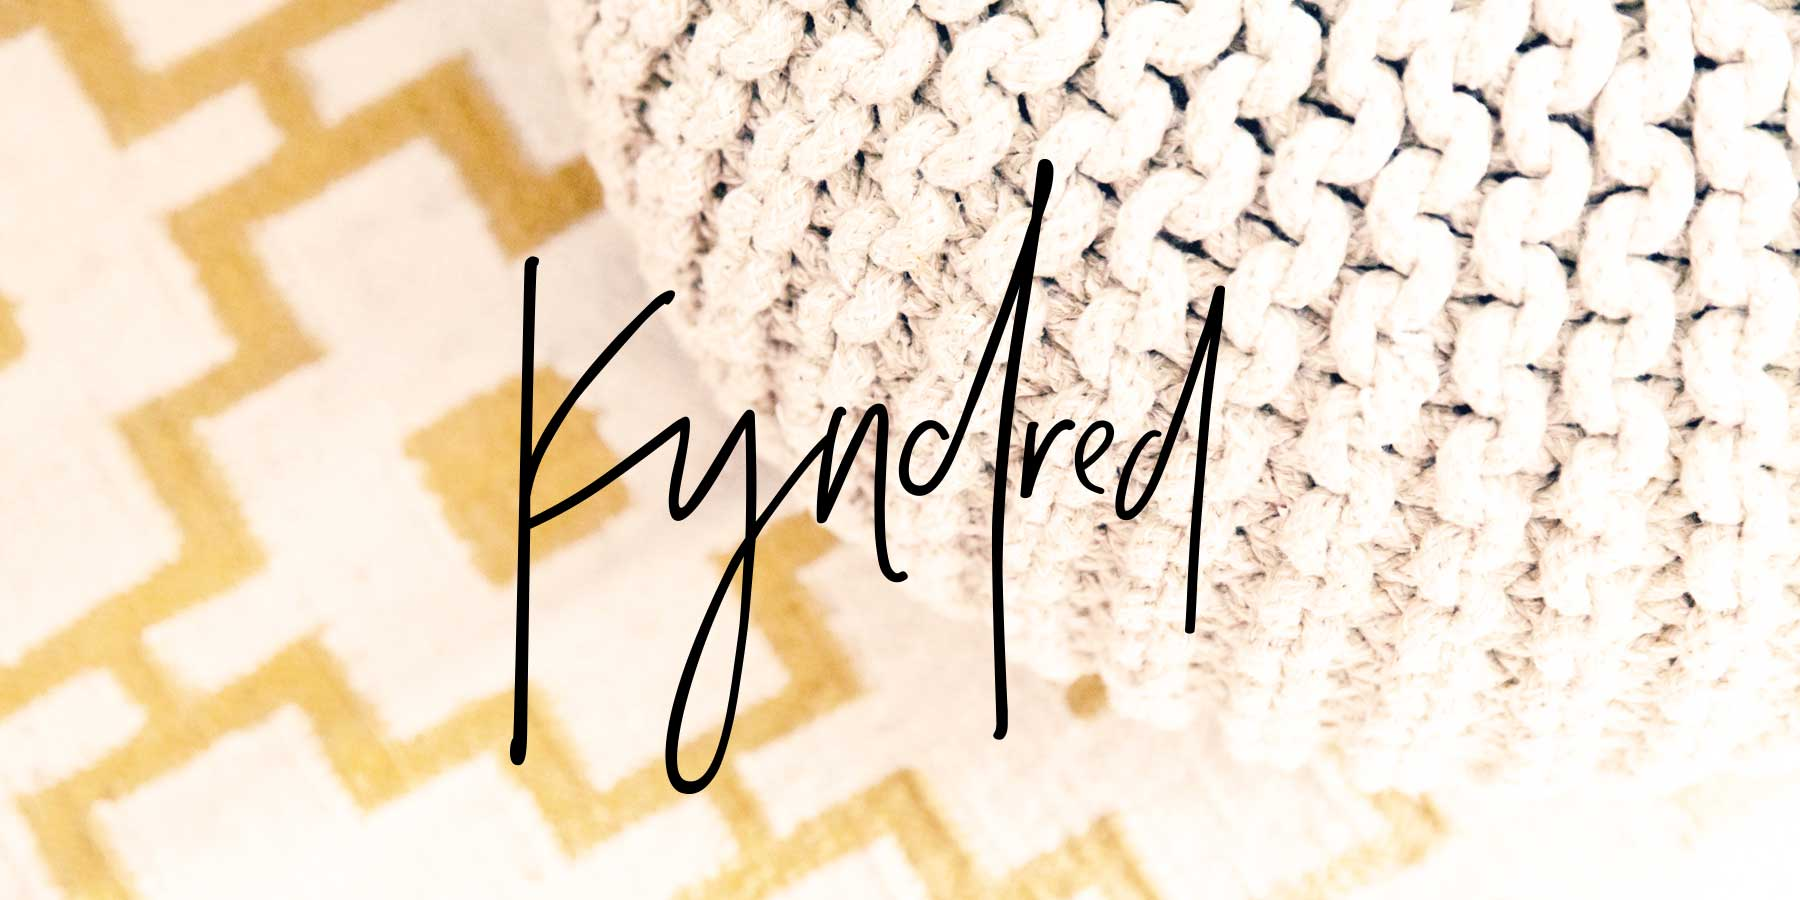 Georgeson Style Kyndred